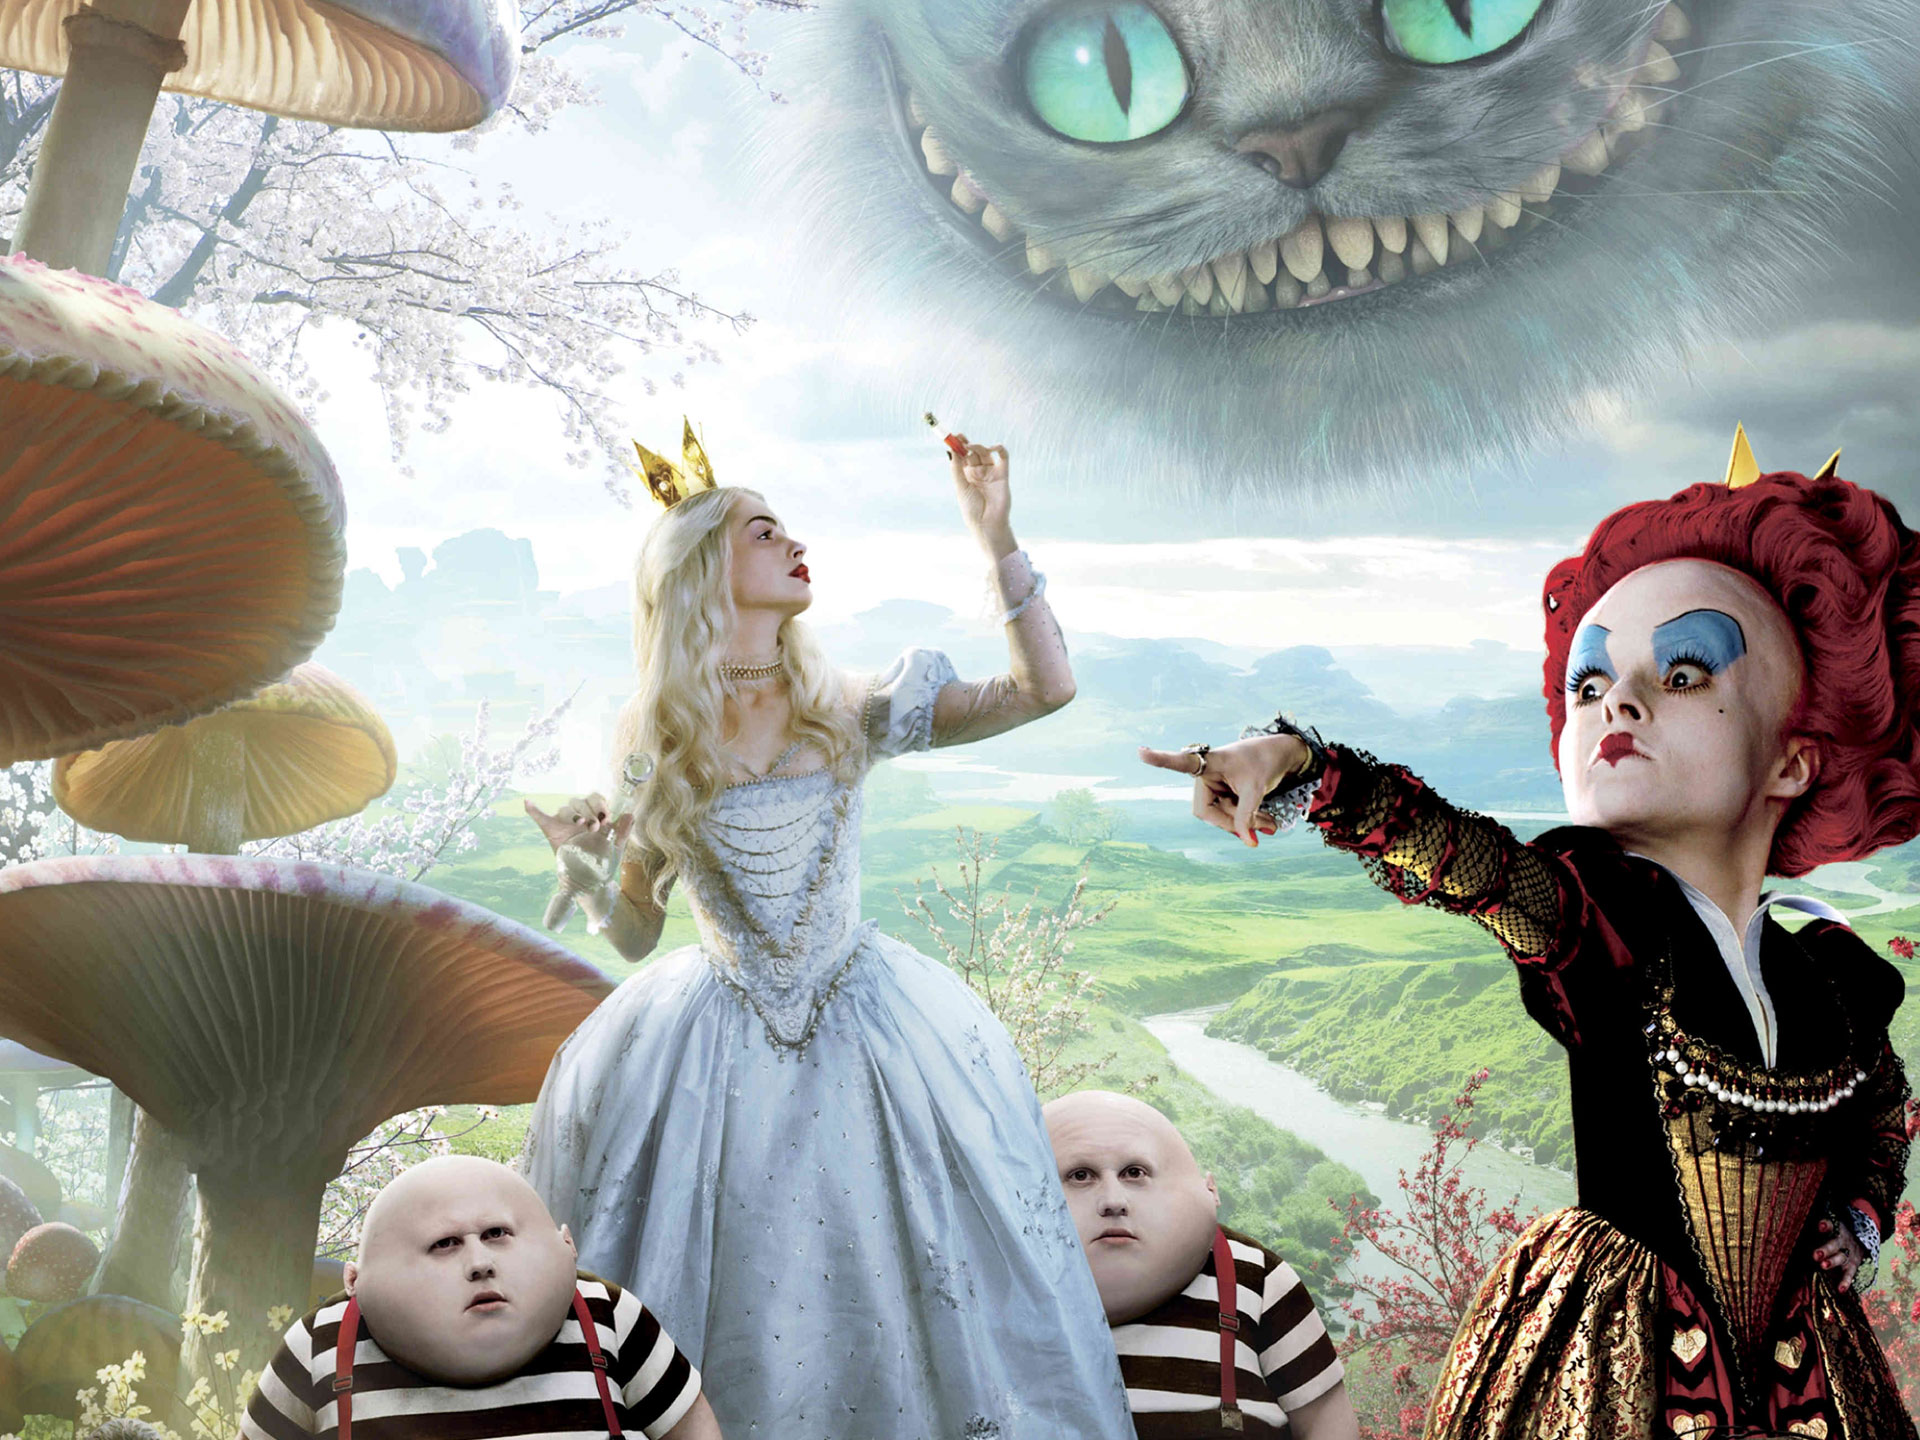 2010 Alice in Wonderland 850.35 Kb